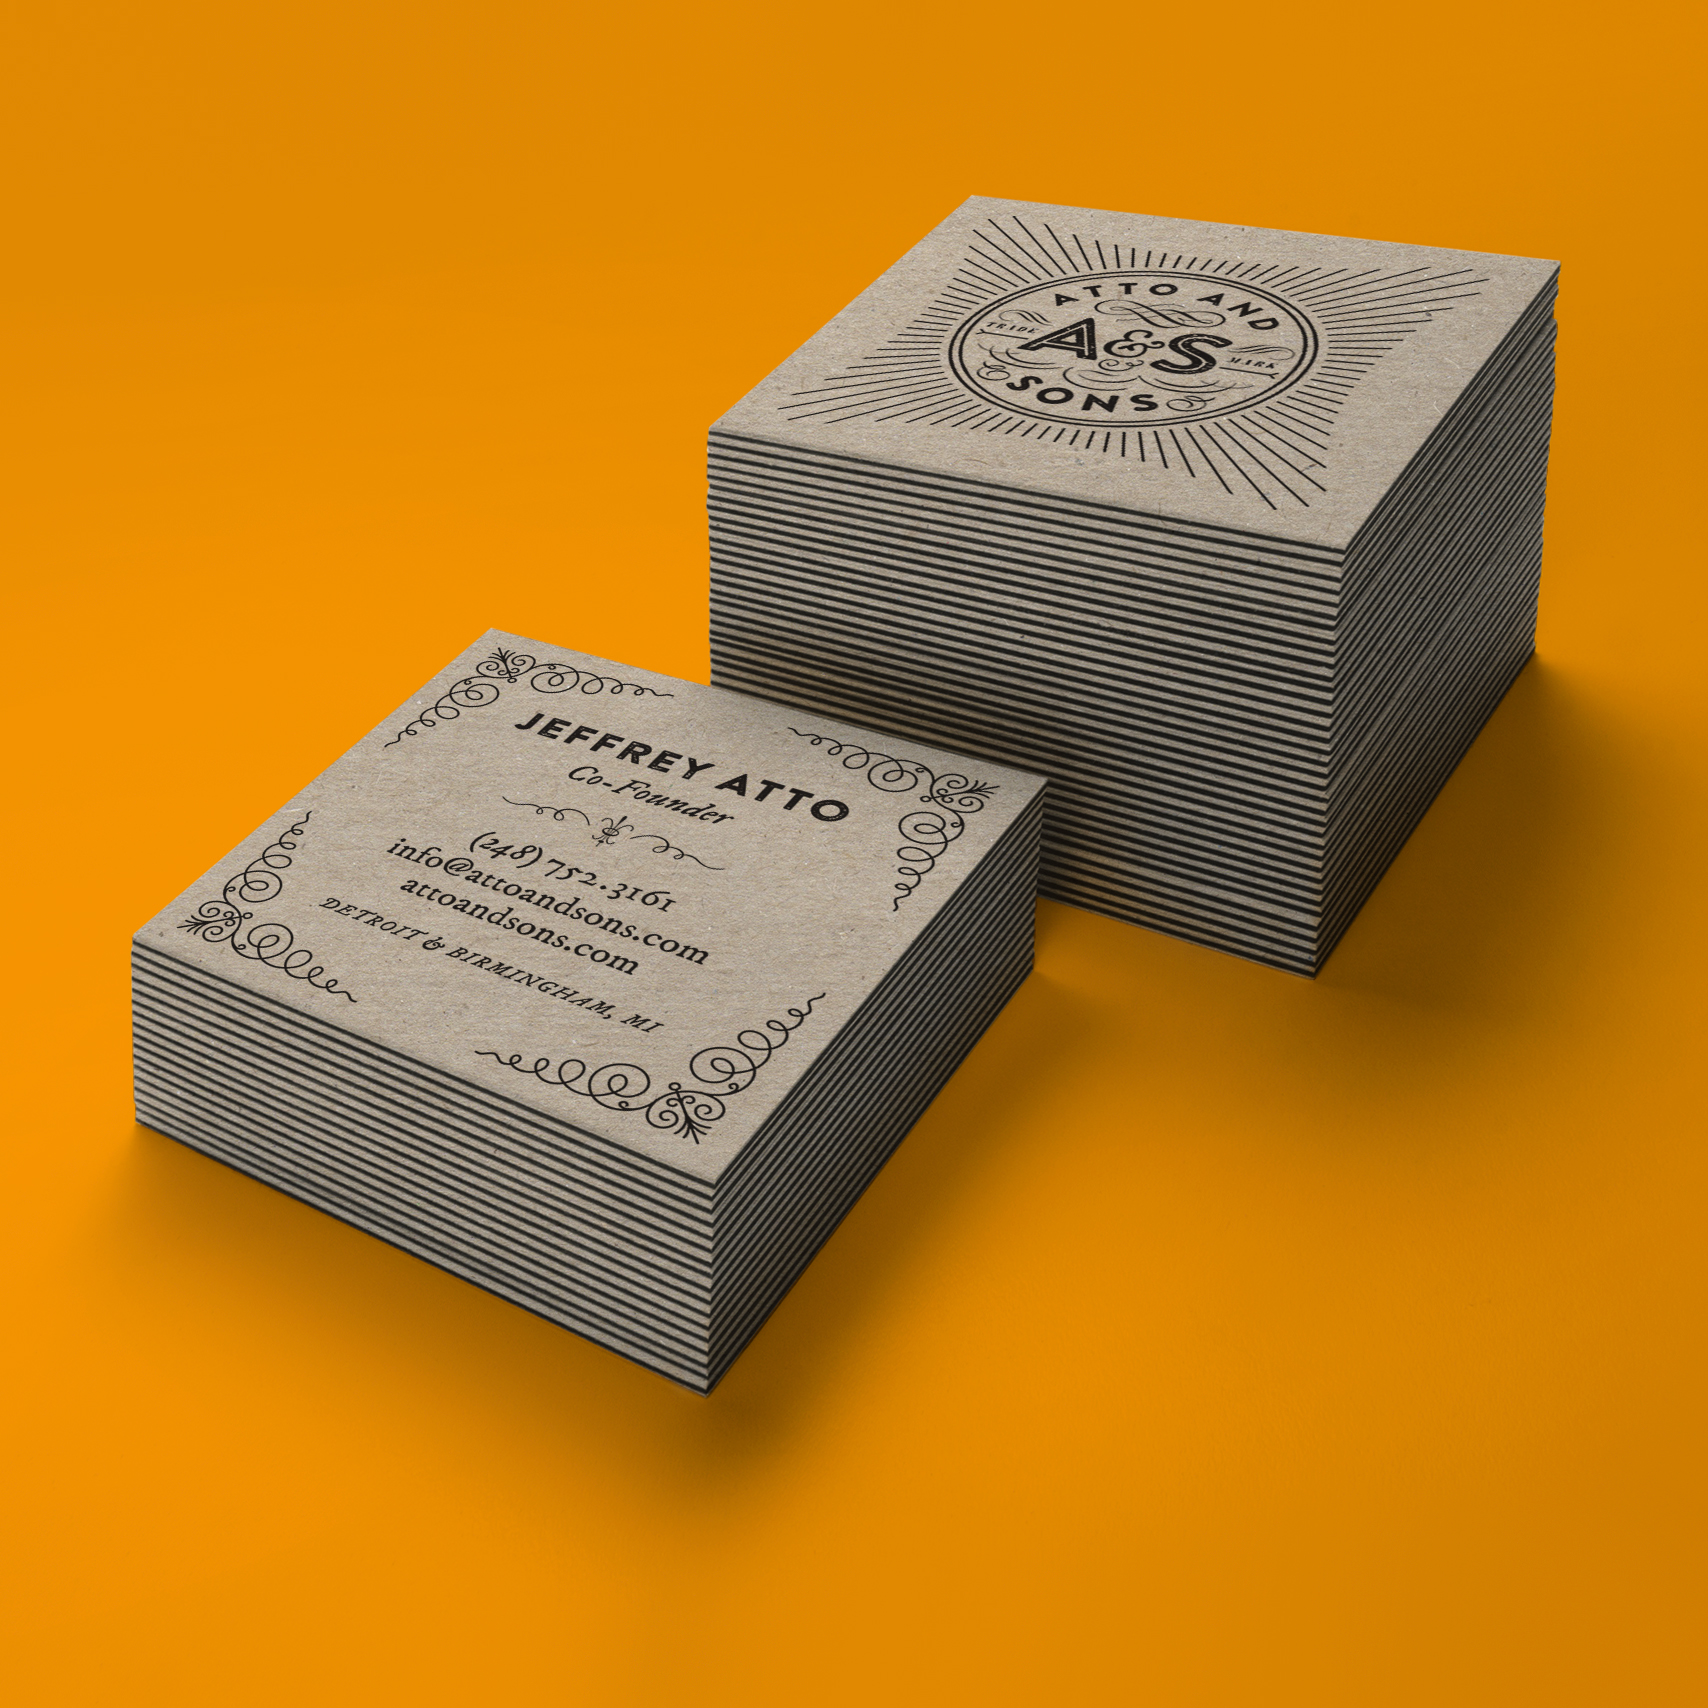 Atto_And_Sons_BusinessCards.jpg